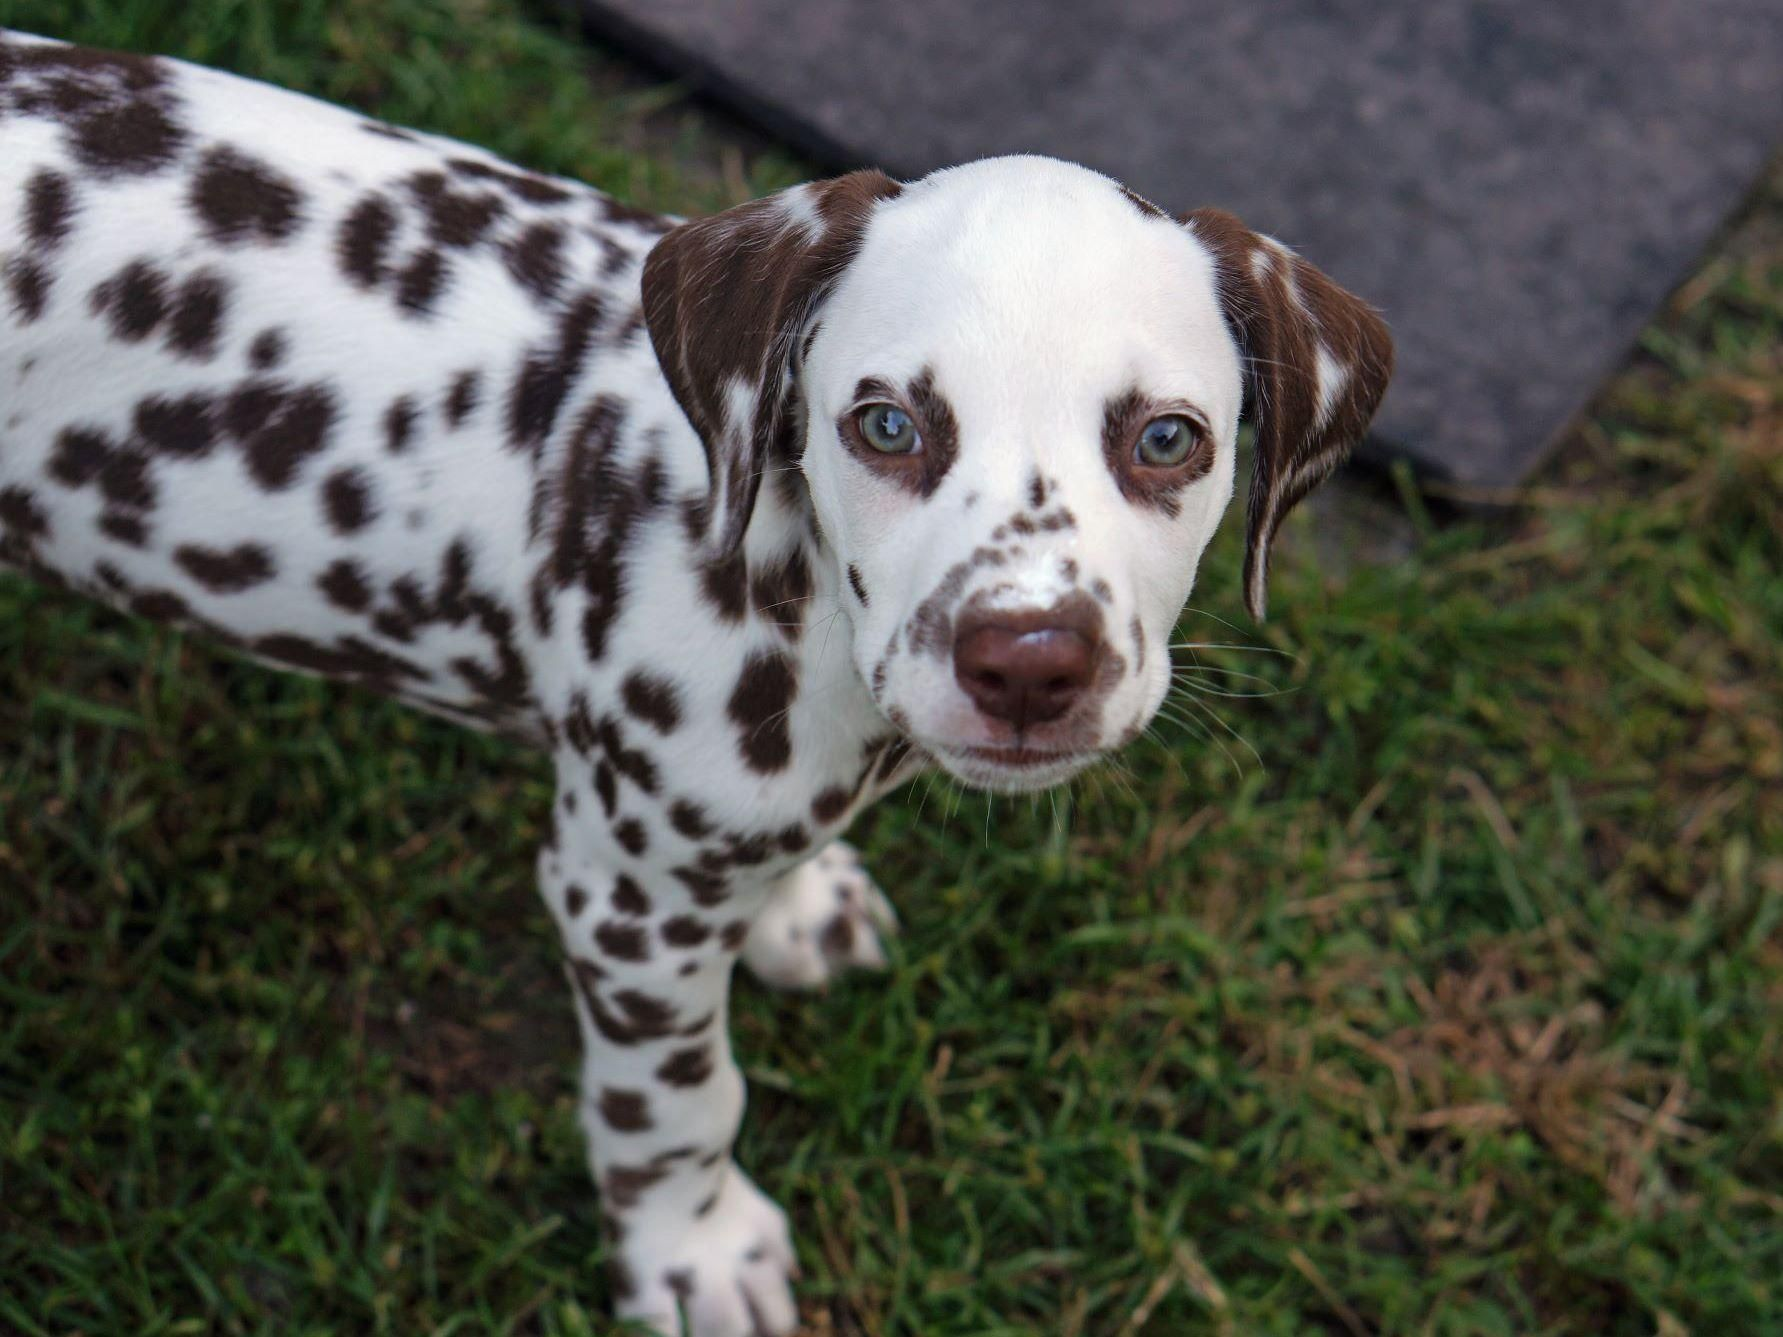 Obx Dalmatians Has Puppies For Sale On Akc Puppyfinder Dalmatian Puppies For Sale Dalmatian Puppy Big Dog Breeds